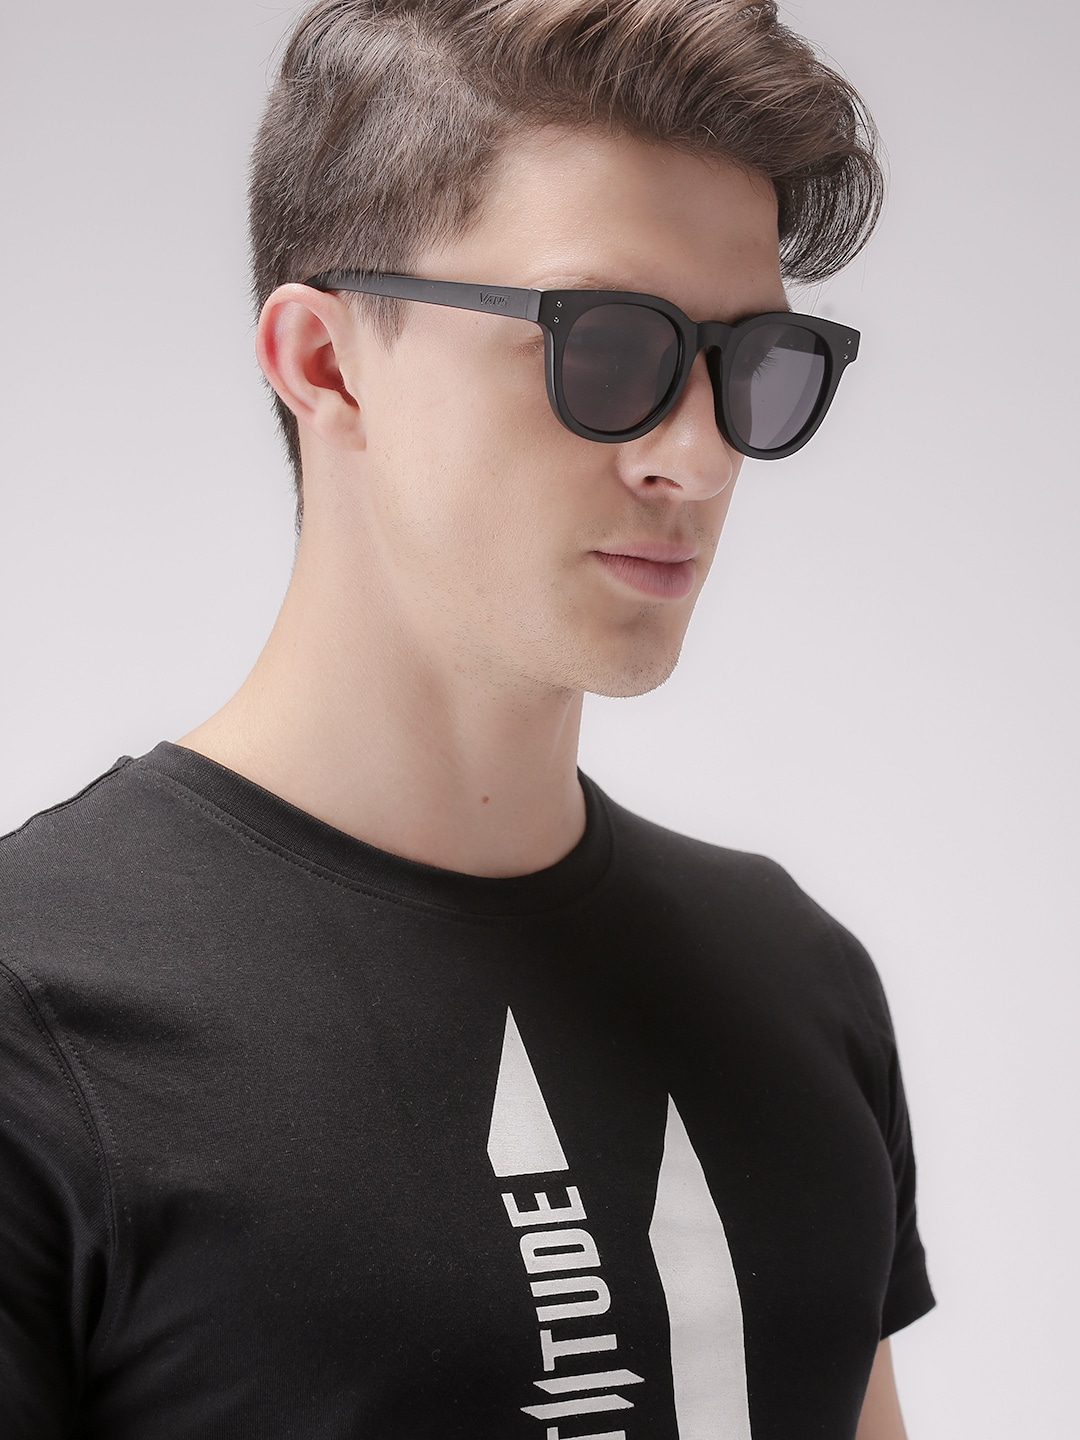 Men Round Sunglasses  vans men round sunglasses vn0005yoblk1 sunglasses for men